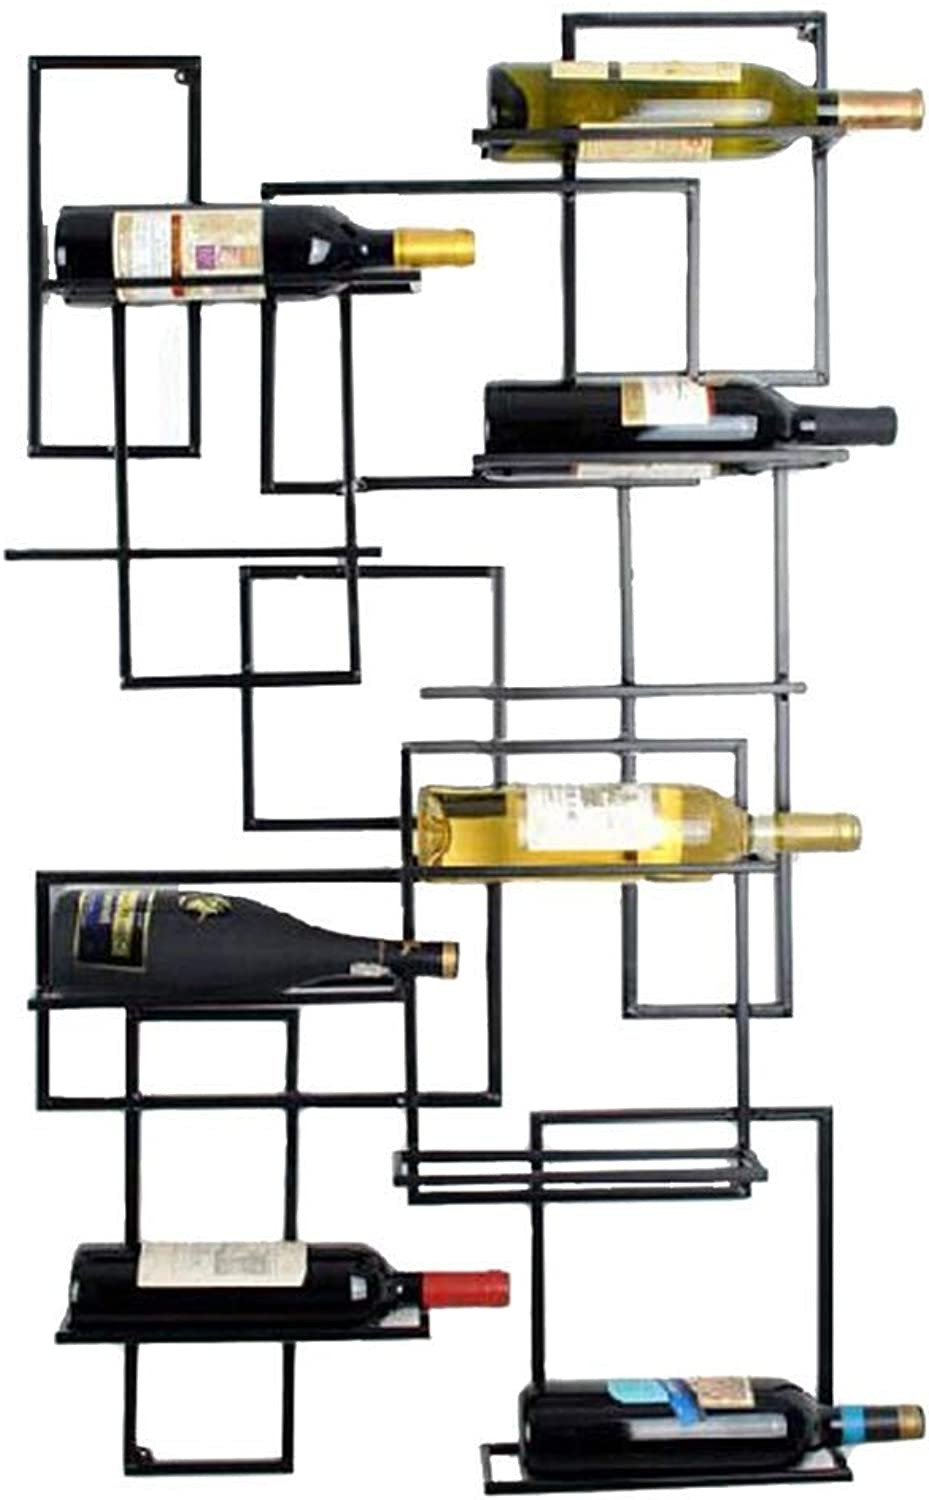 SYF Rack Adjustable Height Wall-Mounted Bottle Rack Glass Holder Metal Wall-Mounted Wine Bottle Rack Wine Rack  Metal Iron Wine Glass Holder Goblet Holder A+